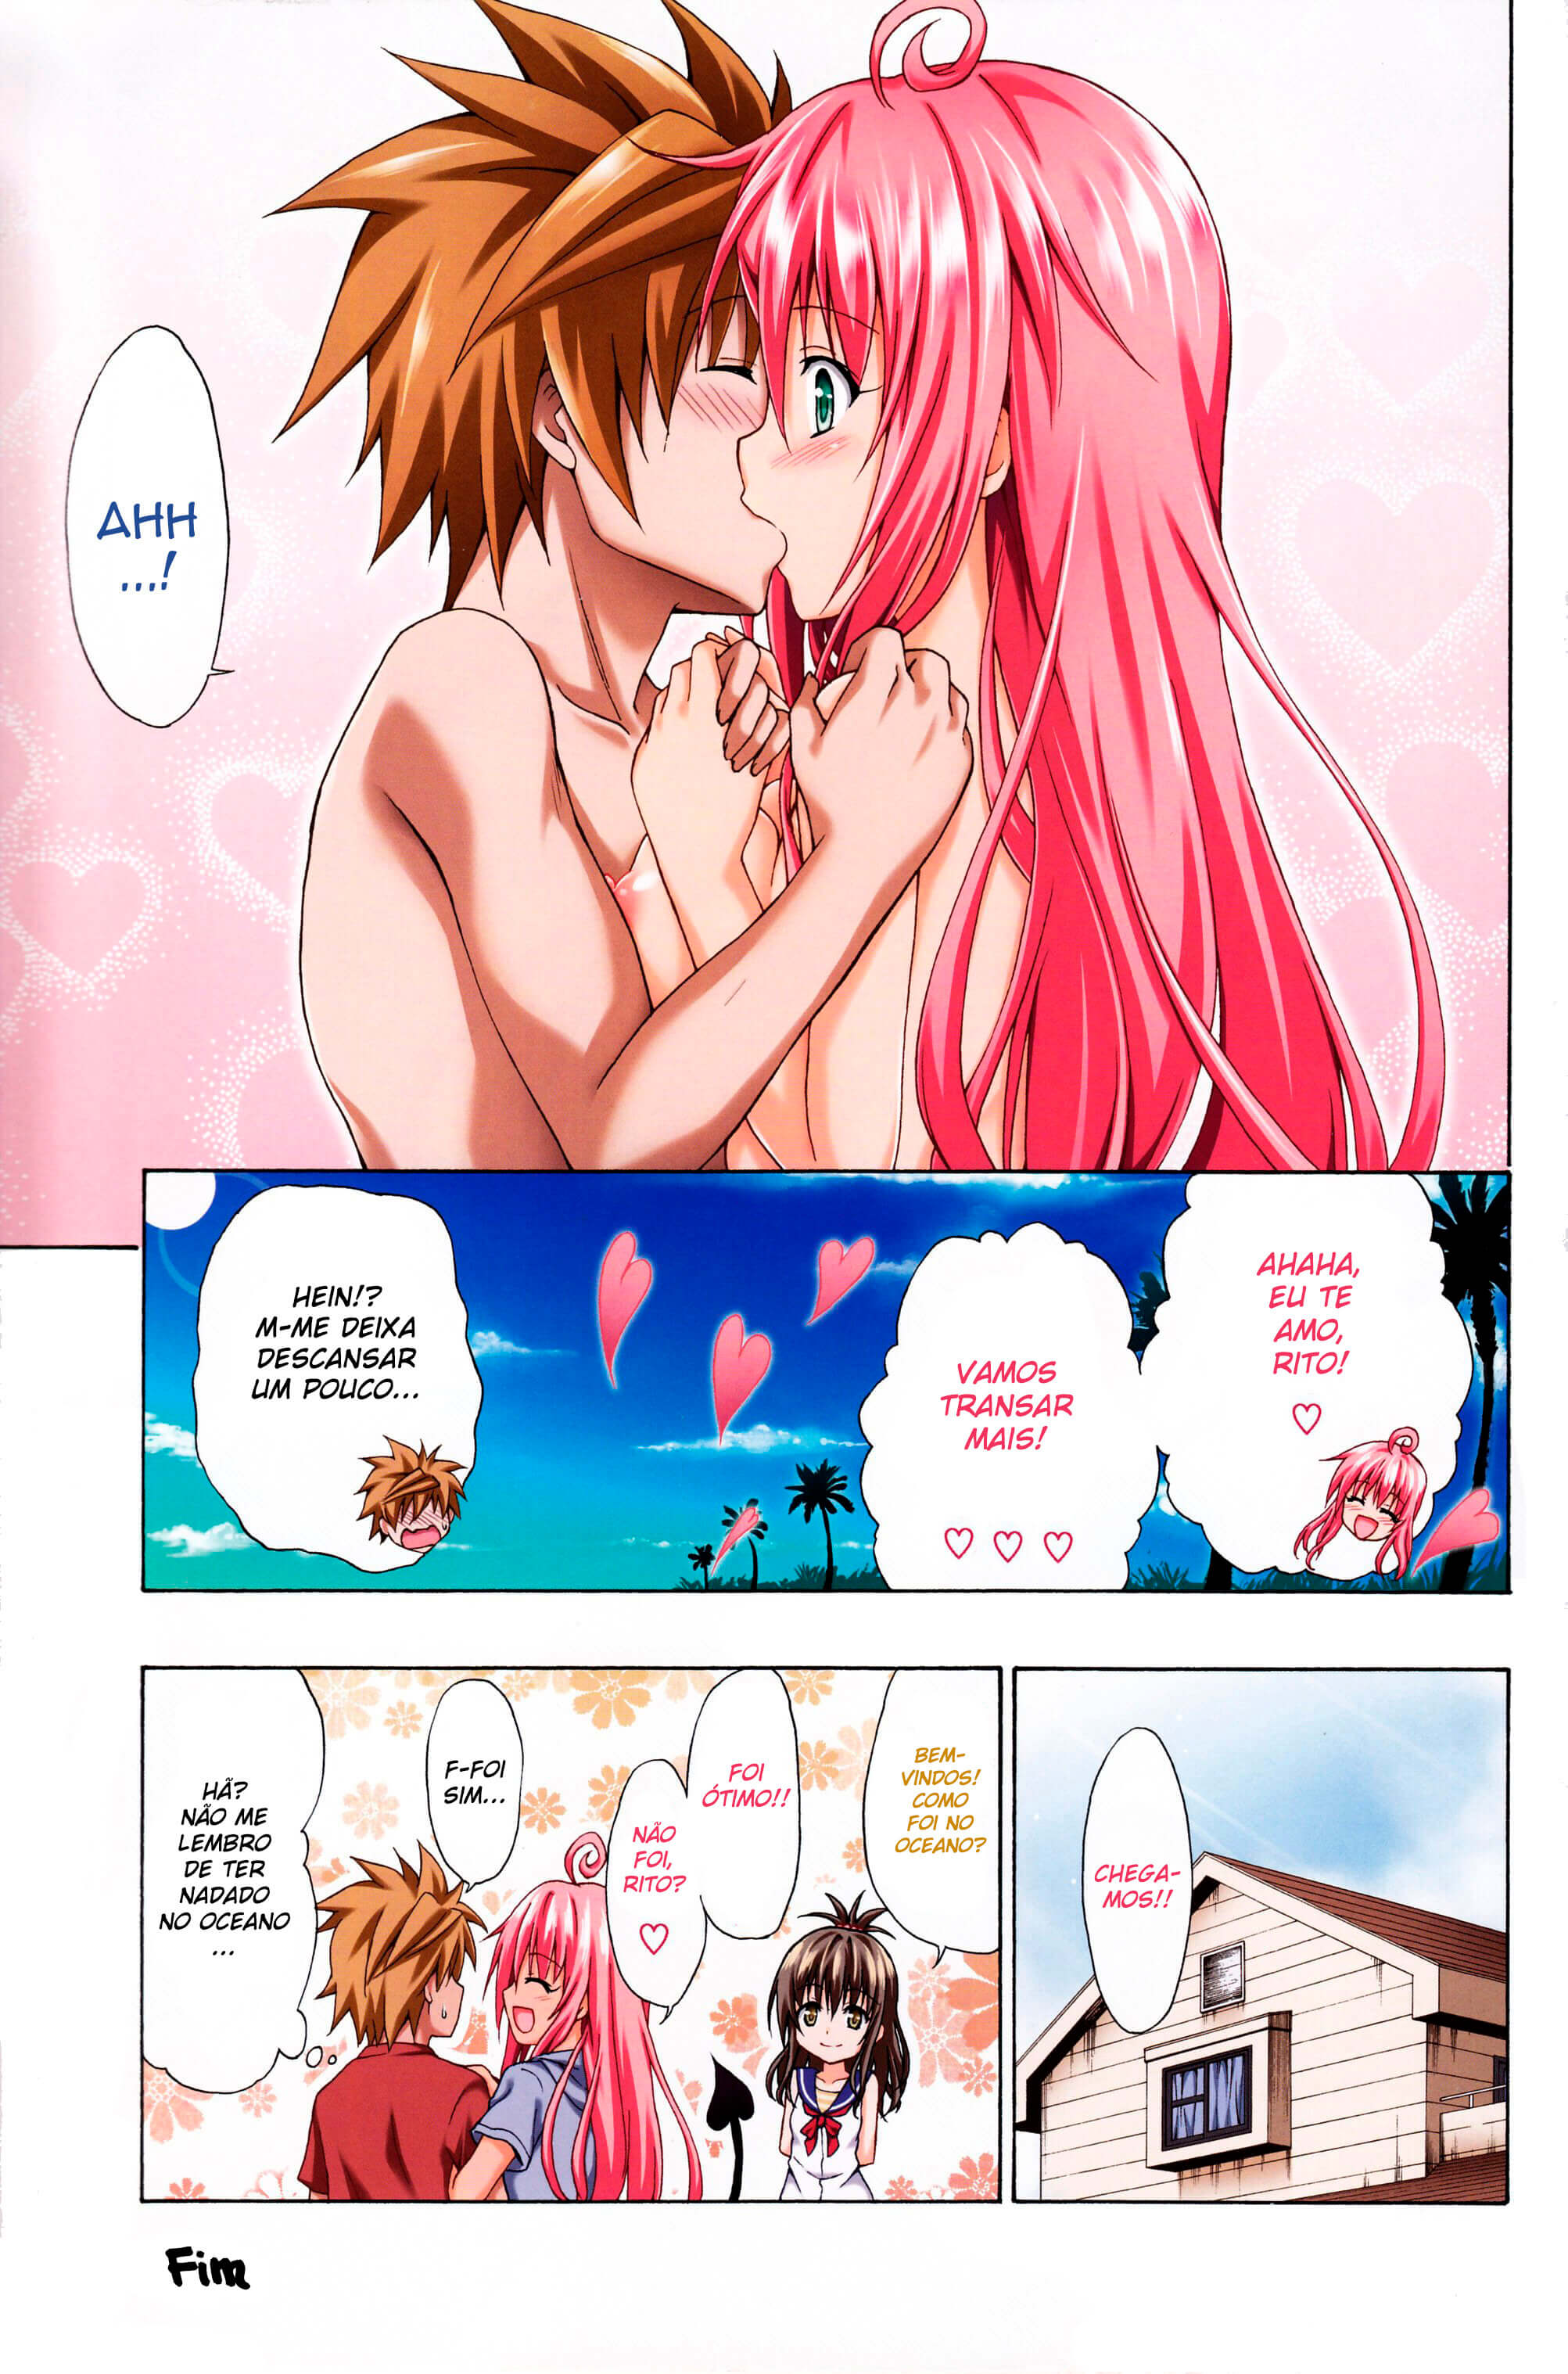 Manga to love ru porno